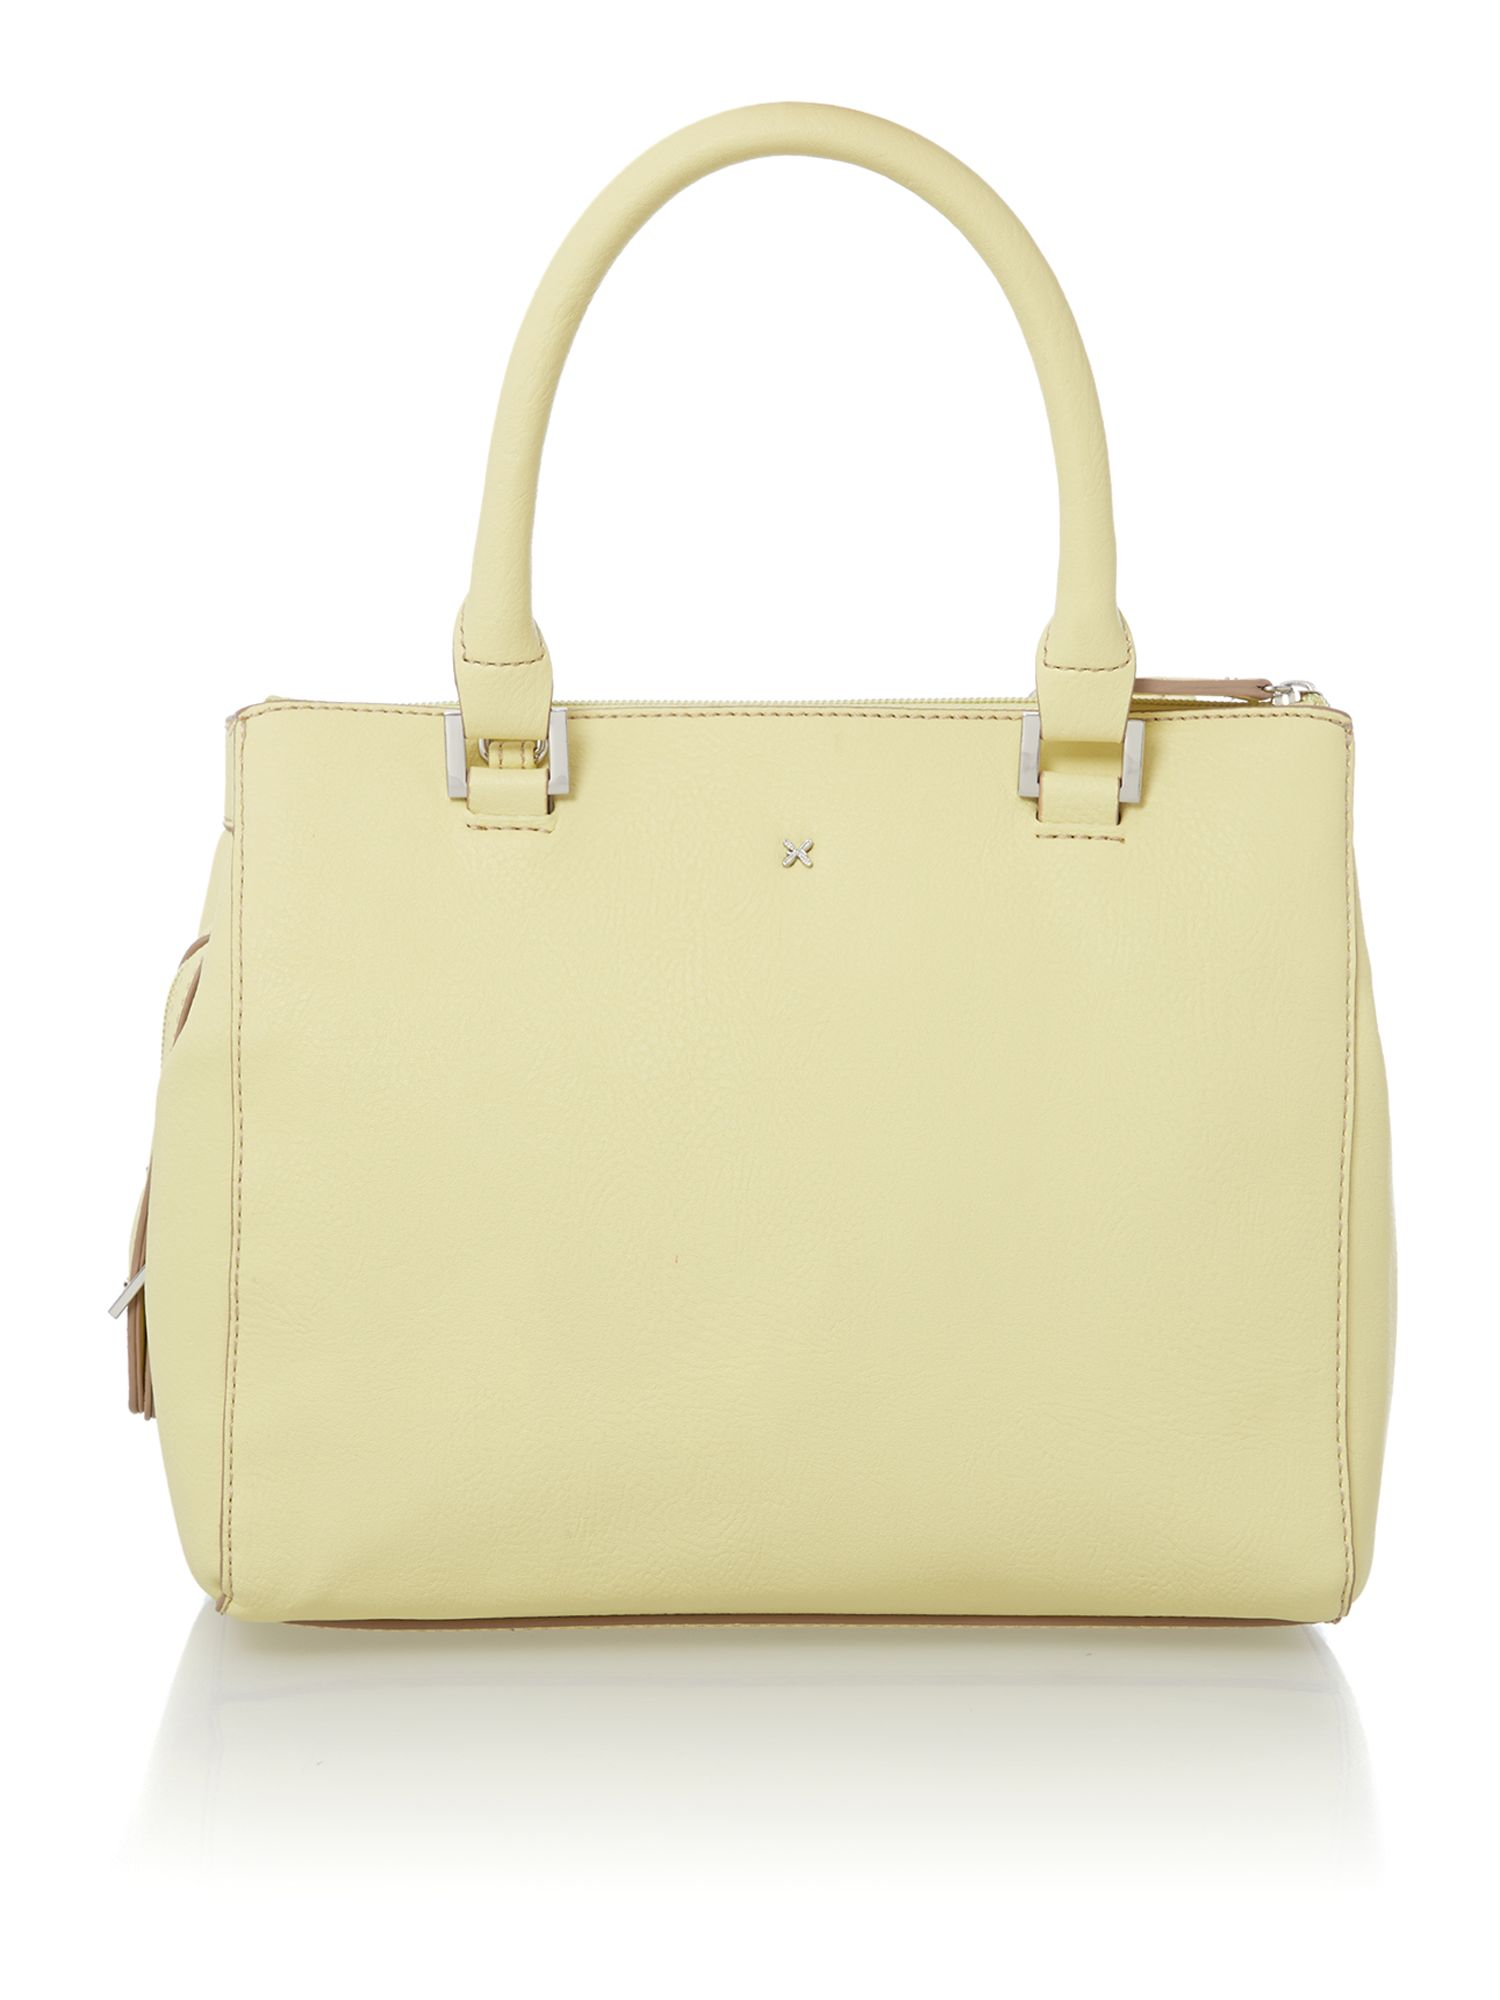 Mia yellow cross body bag